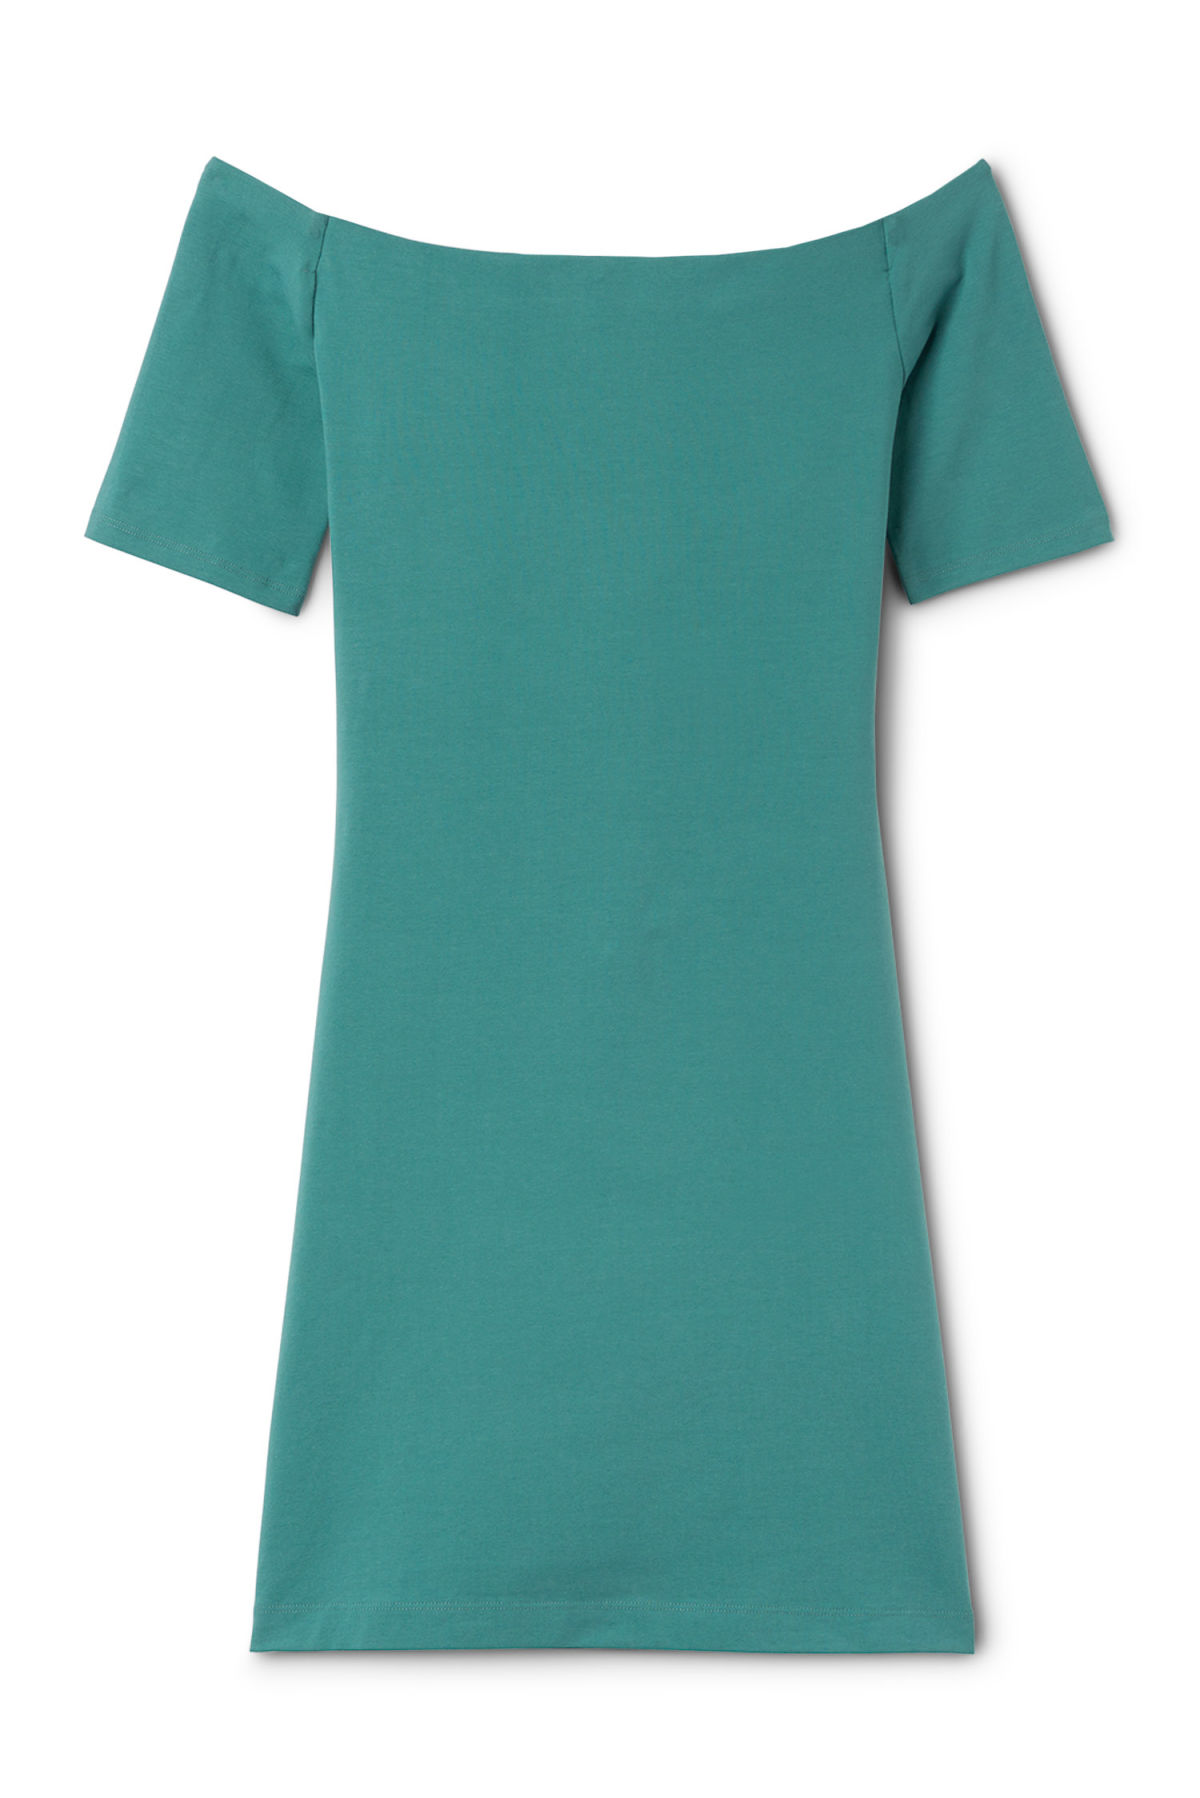 Weekday Riley dress - Turquoise Free Shipping Cheap Real yIGRyN